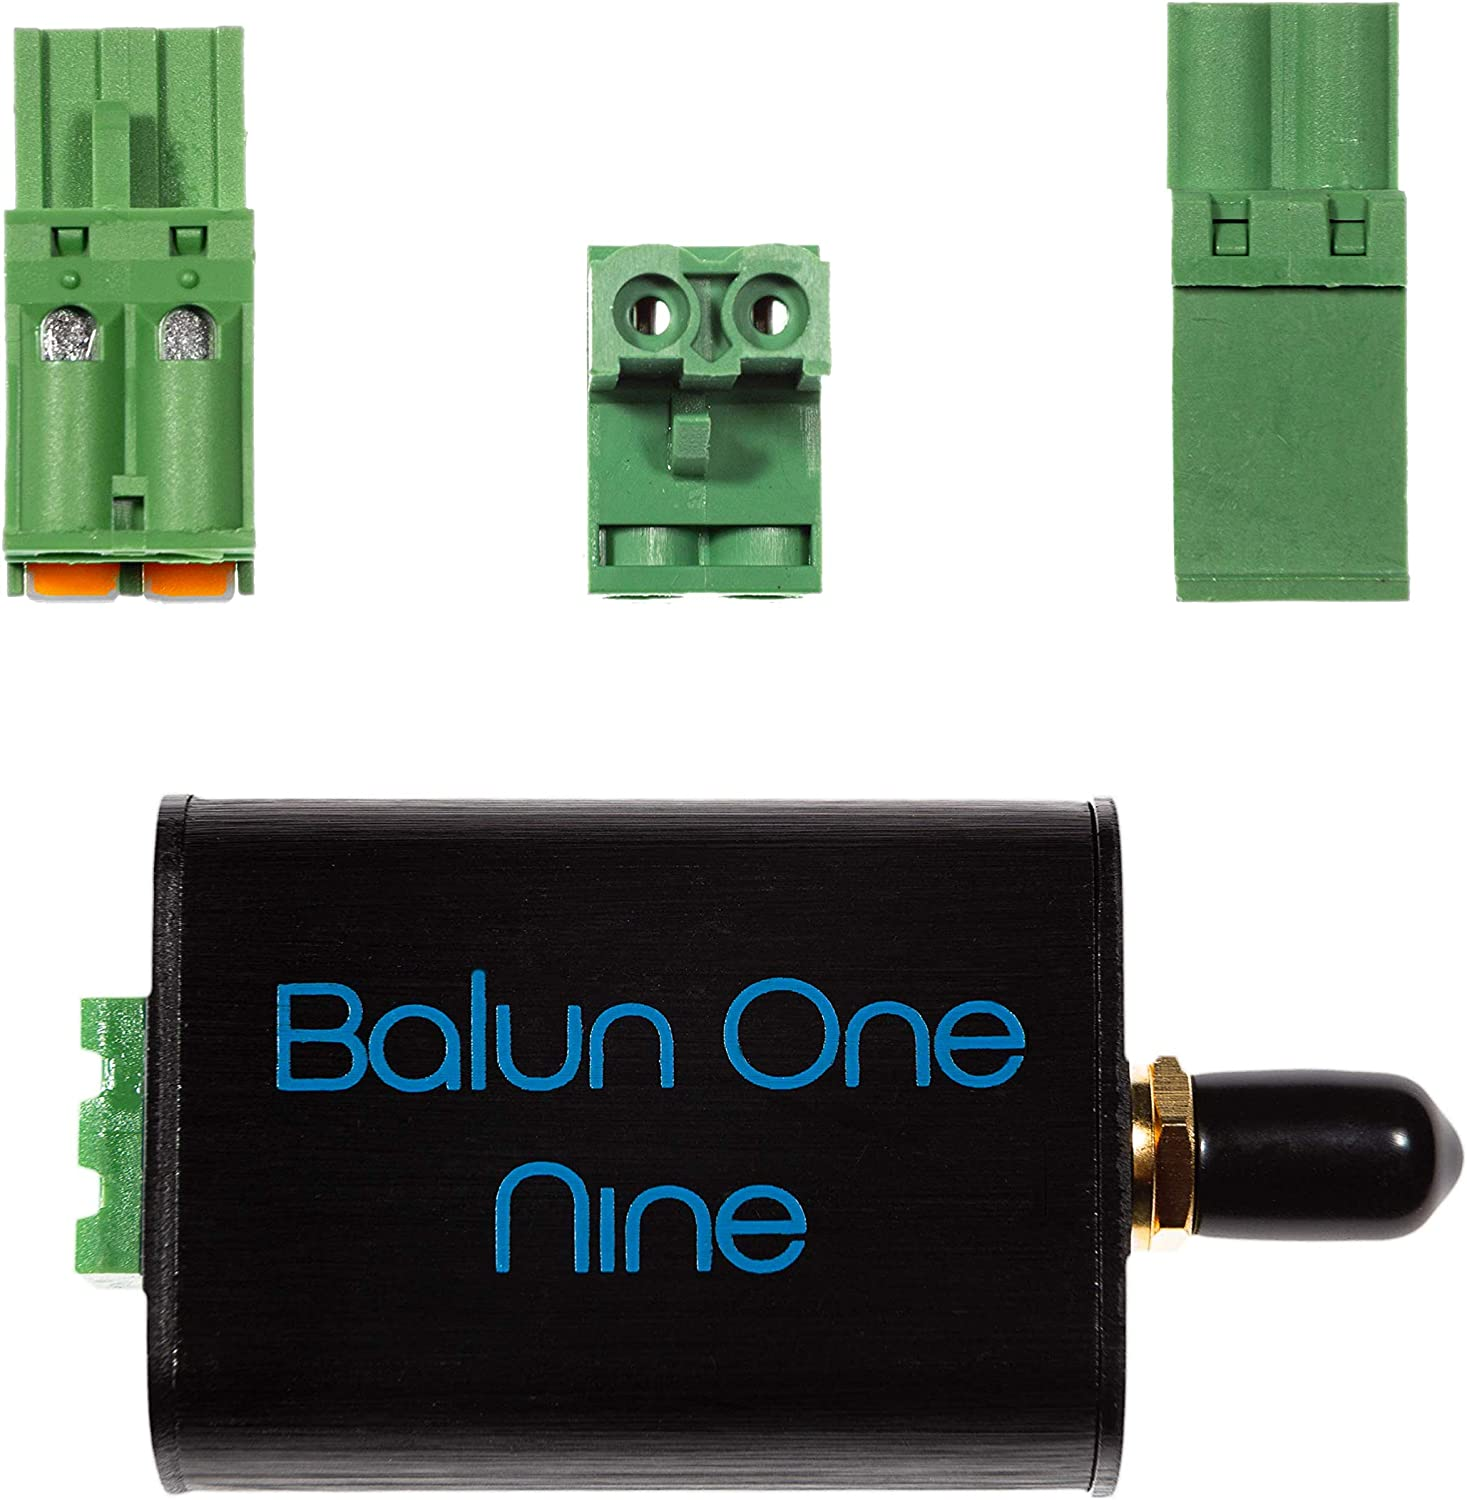 Balun One Nine v2 - Small Low-Cost 9:1 (1:9) Balun with Input Protection & Enclosure for HF & Shortwave. Great for Software Defined Radio (RTL-SDR & SDRPlay), Ham It Up, and Other Capable Radios